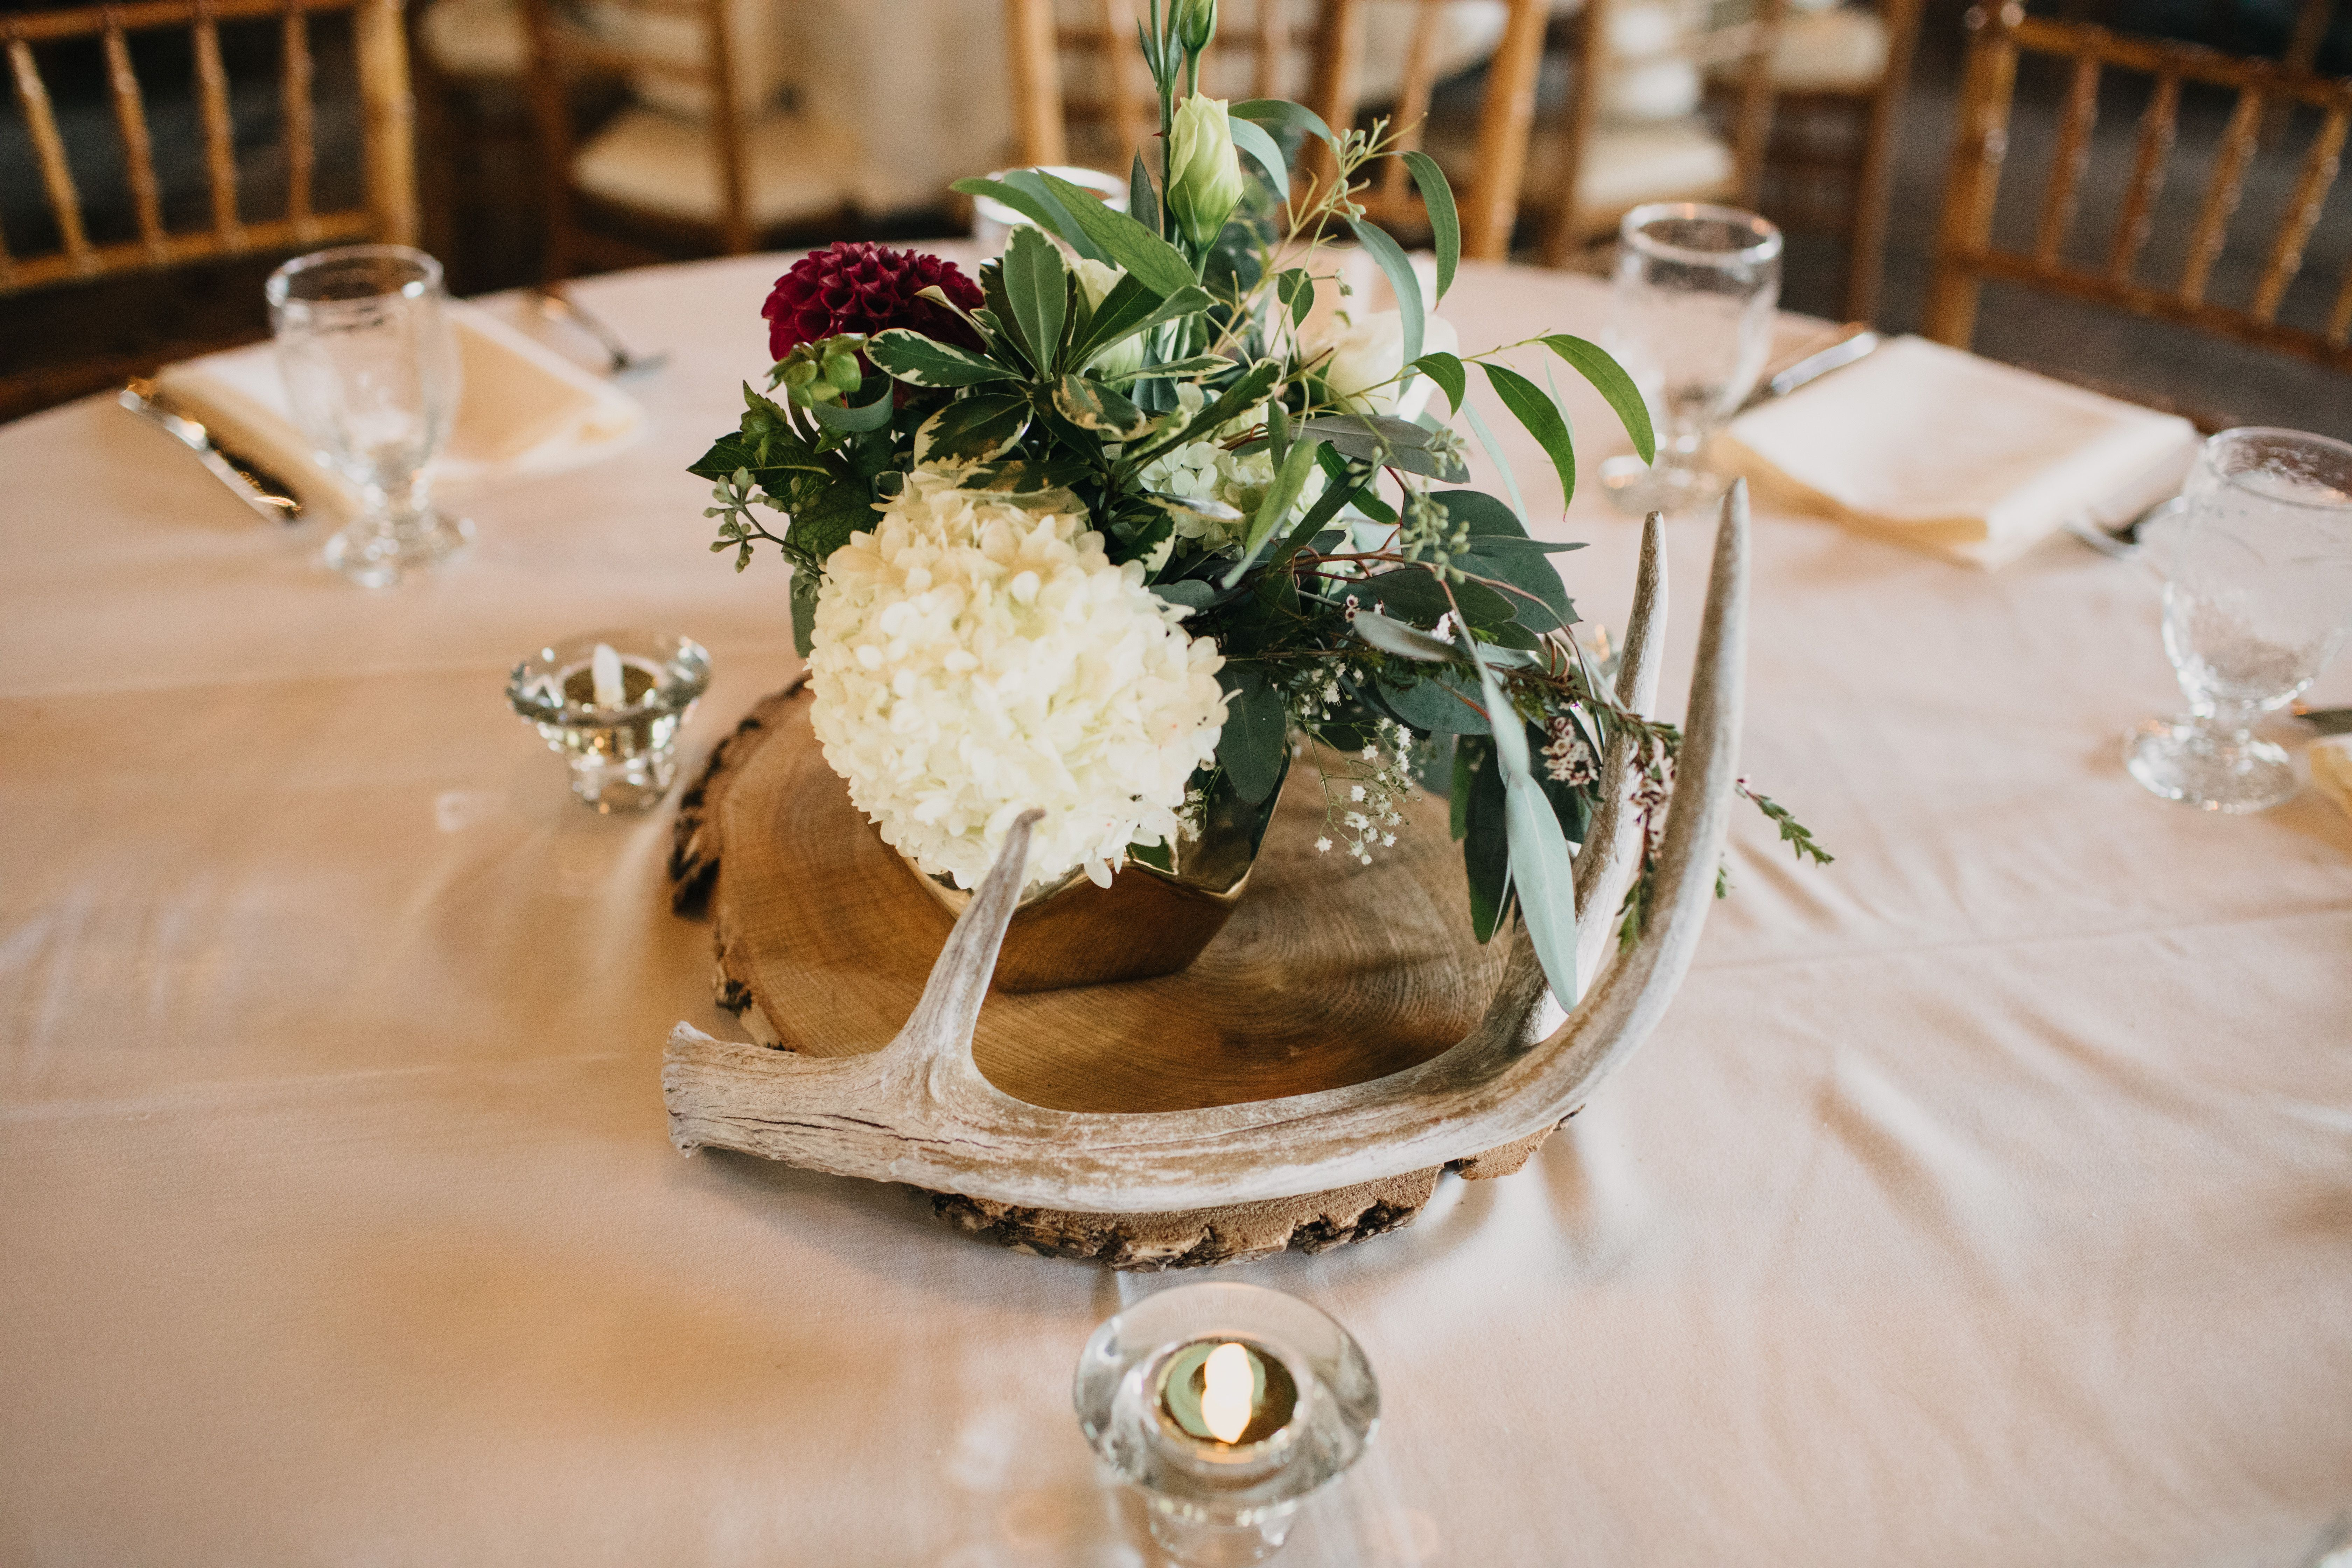 Antler Floral Table Decor At Maywood Stone Barn In Rochester Mn Photography Eileen K Photography Fl Antler Wedding Centerpieces Antler Wedding Wedding Table